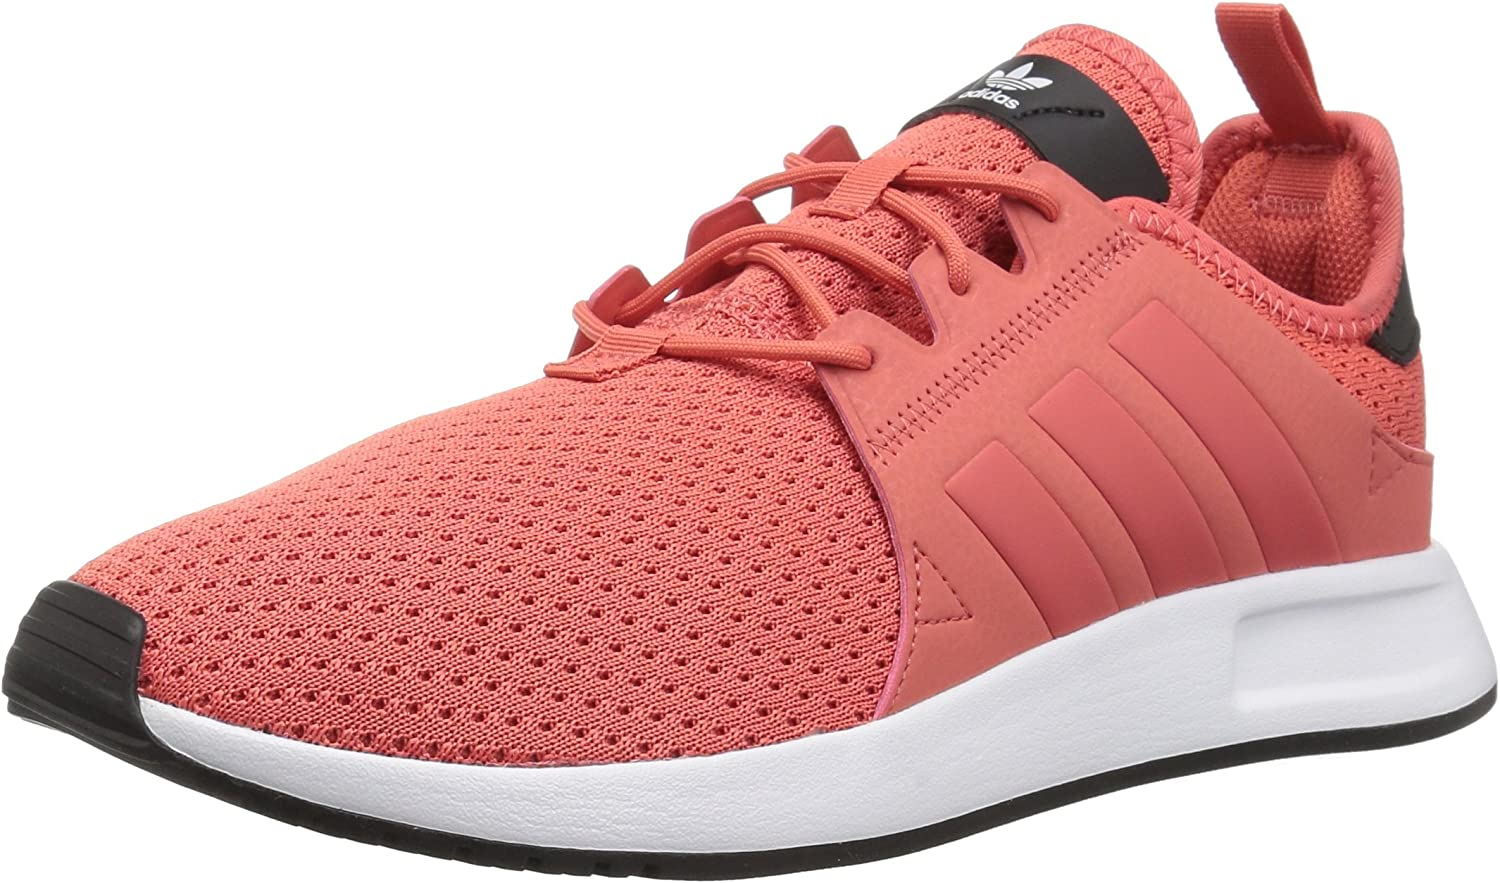 Muße Adidas Rosa Orange Grau Walking Schuhe, Adidas